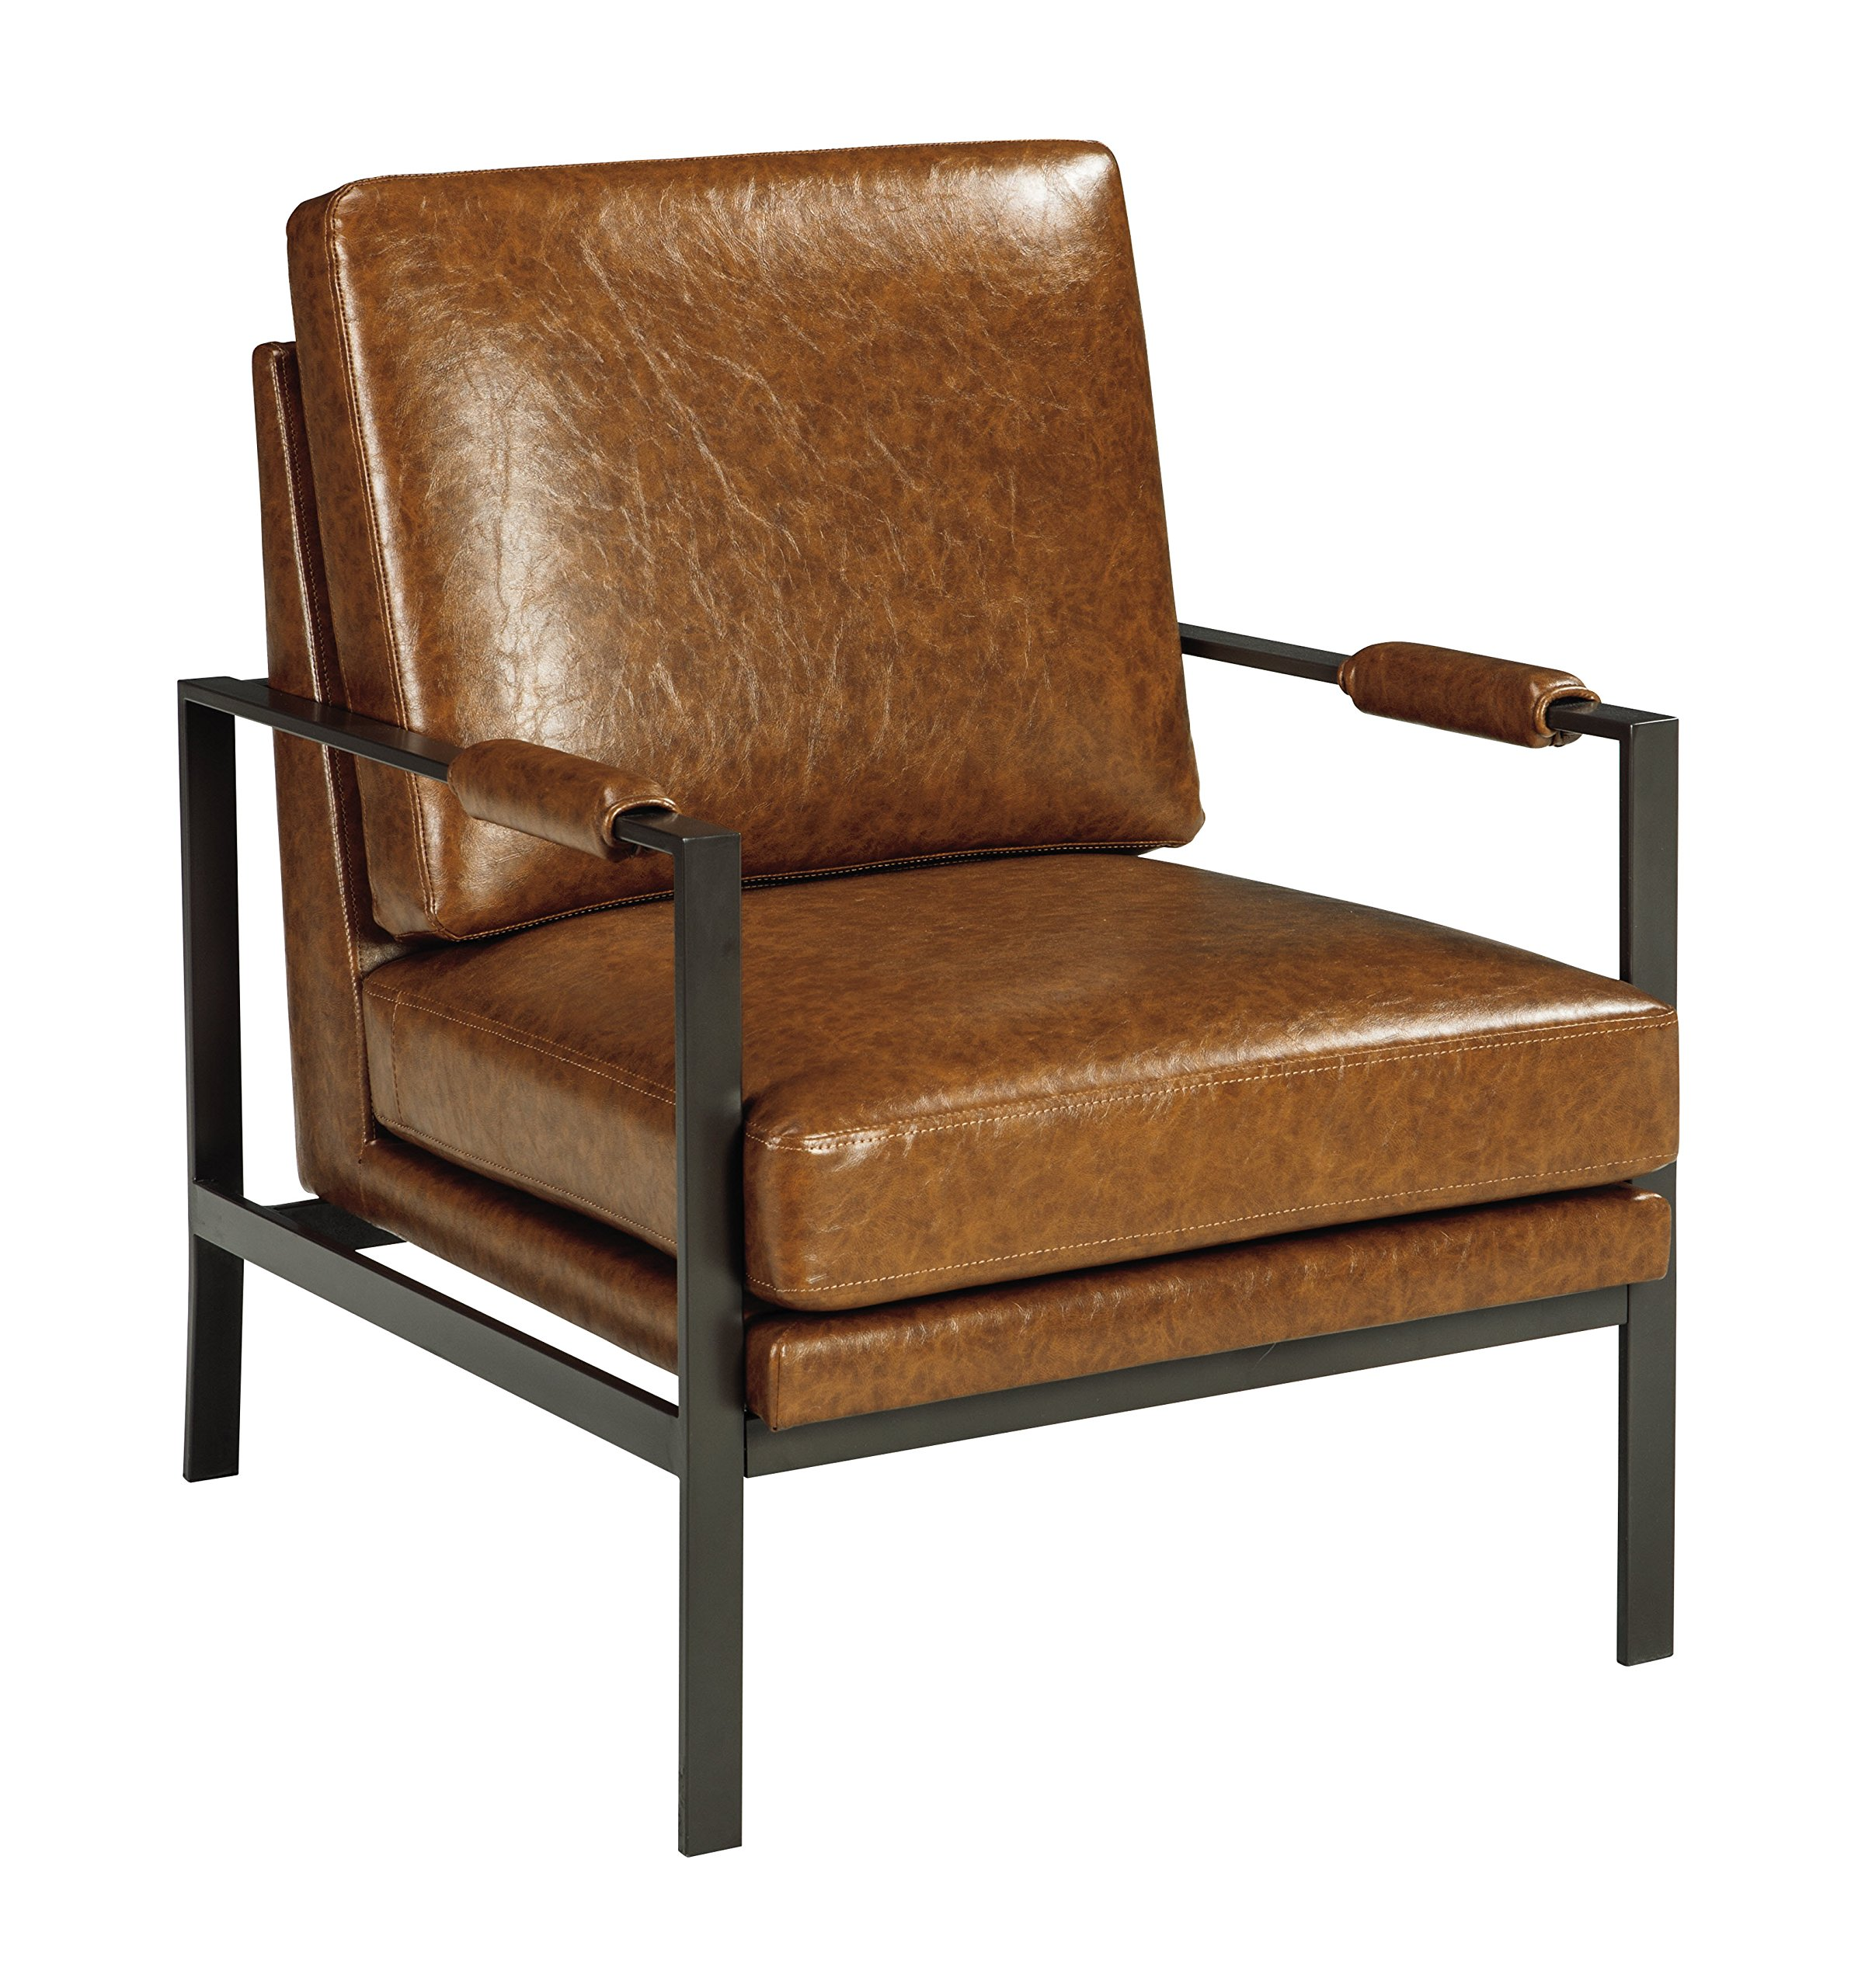 Ashley Furniture Signature Design - Peacemaker Accent Chair - Mid Century Modern - Brown - Antique Brass Legs - MODERN ACCENT CHAIR: You owe it to yourself to rest and relax once in a while, but do so in style. Enjoy how this accent chair's box cushions provide plush, luxe comfort thanks to the faux leather HANDSOMELY CRAFTED: Sit back on high-resiliency foam cushions wrapped in faux leather with upholstery-wrapped padded armrests; supported by an exposed metal frame in an antique brass finish LIGHT BROWN: Fashioned in a rich brown, this chair integrates warmth into your room effortlessly for added depth and liveliness - living-room-furniture, living-room, accent-chairs - 91DekDZeNxL -